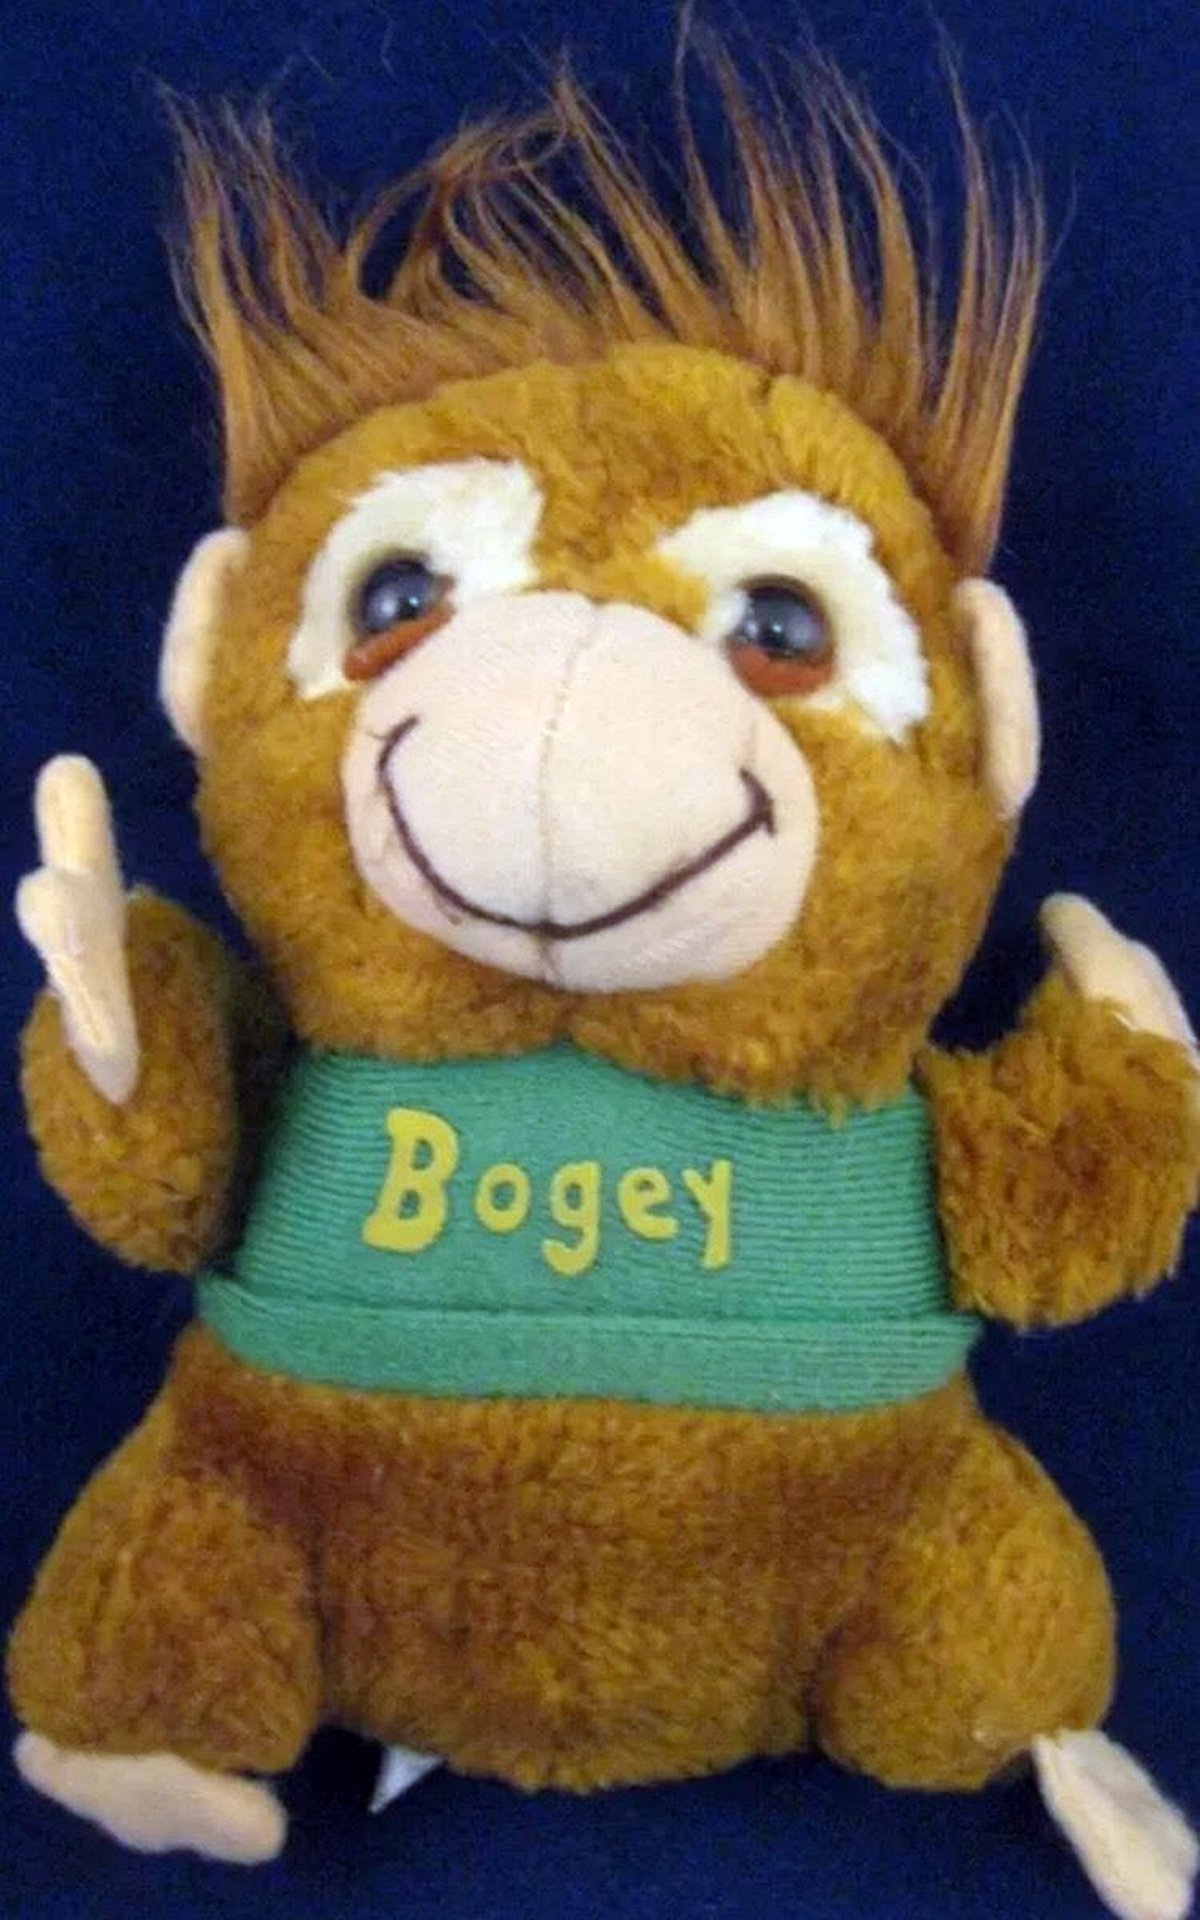 13 18 QUIZ: How Many Of These 15 Cuddly Toys Did YOU Own As A Child?